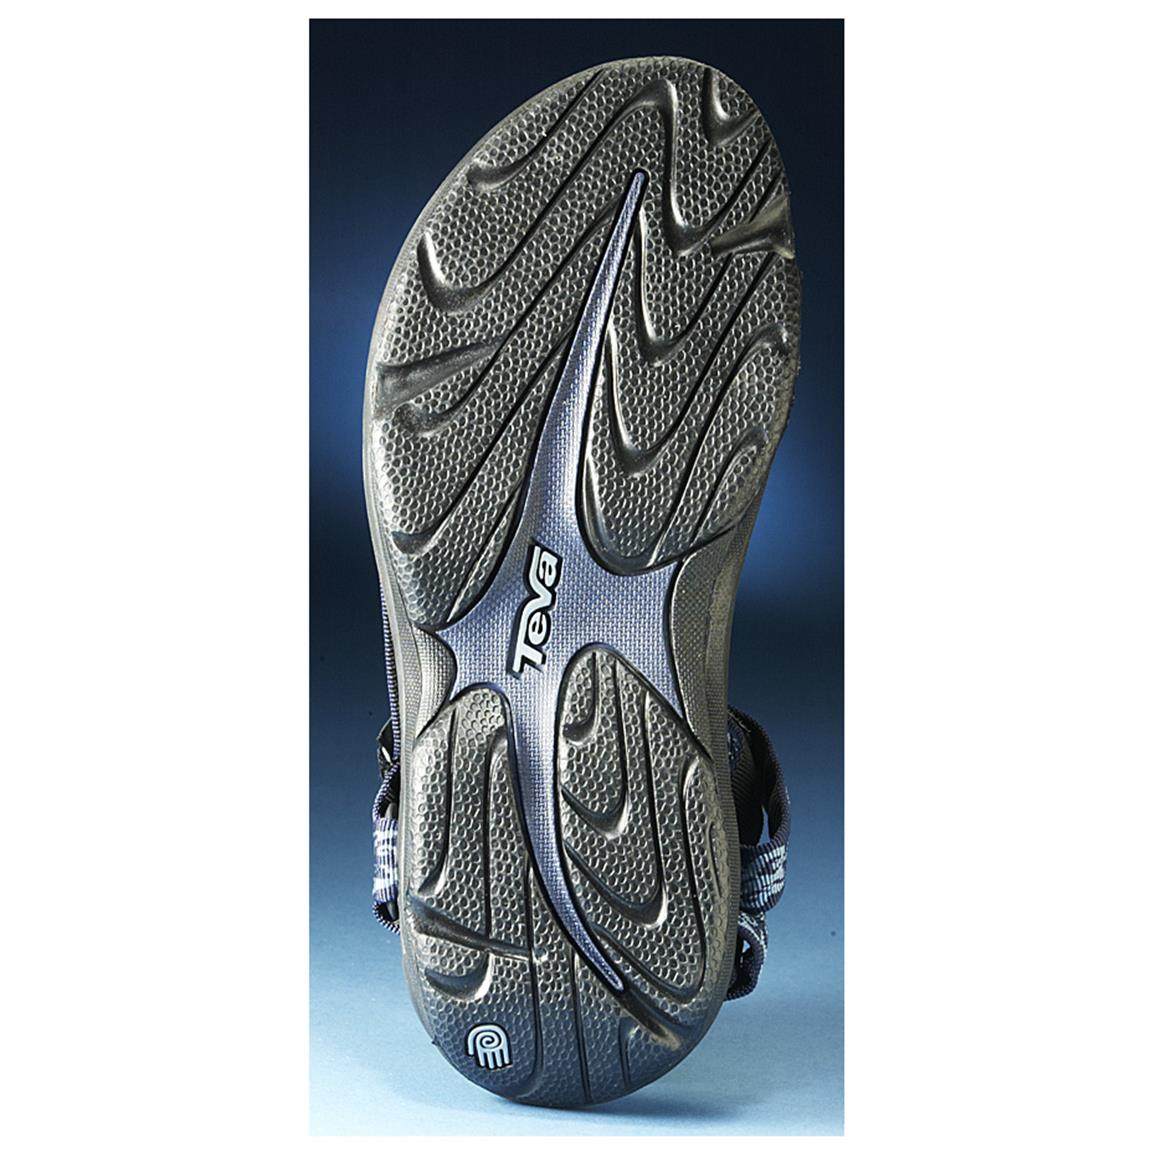 High-traction Durabrasion Rubber™ outsole